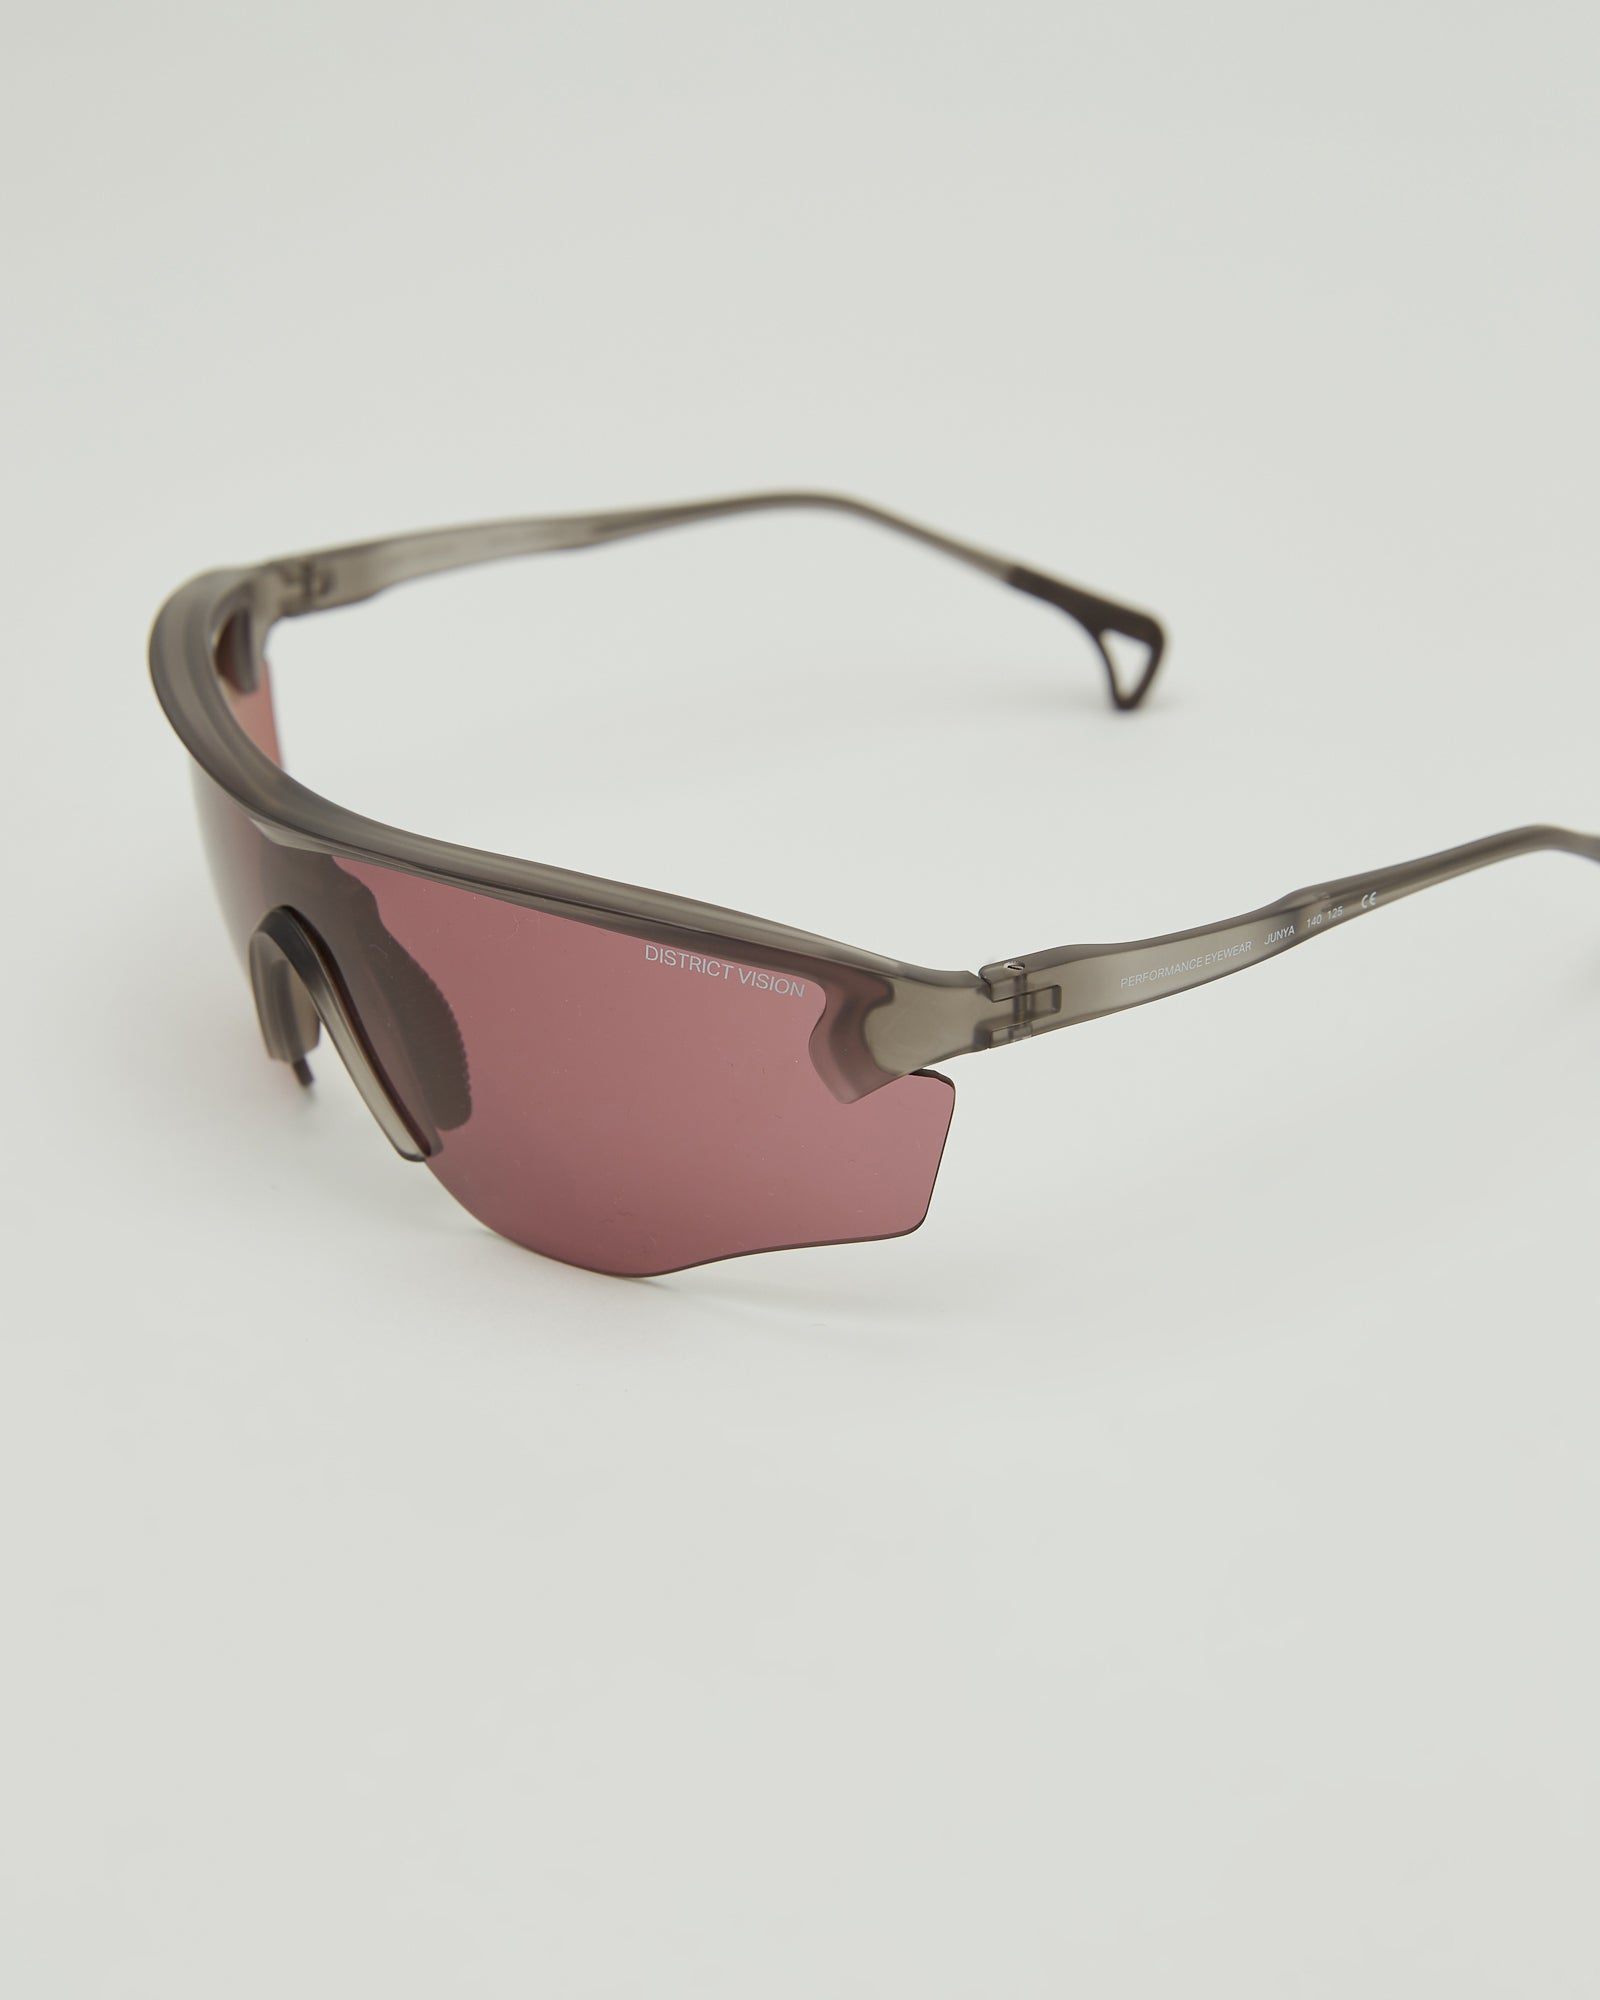 Junya Racer Sunglasses in Black Rose